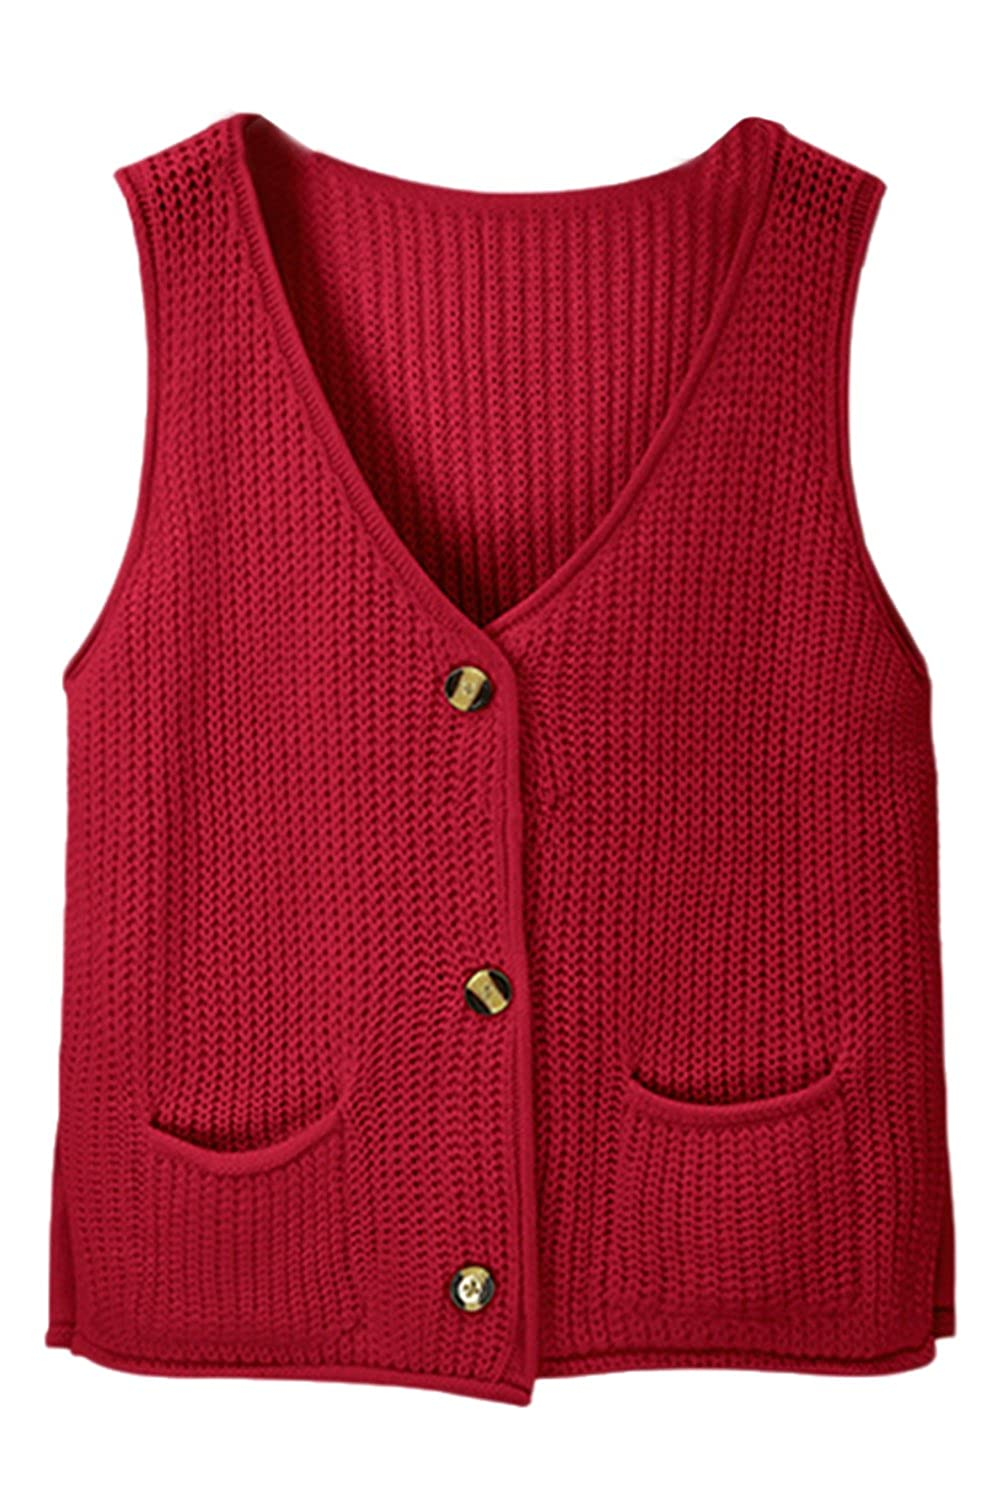 Women's Knit Buttons Jacket Waistcoat Sweater Vests With Pockets CATNCJJ7-Black-F